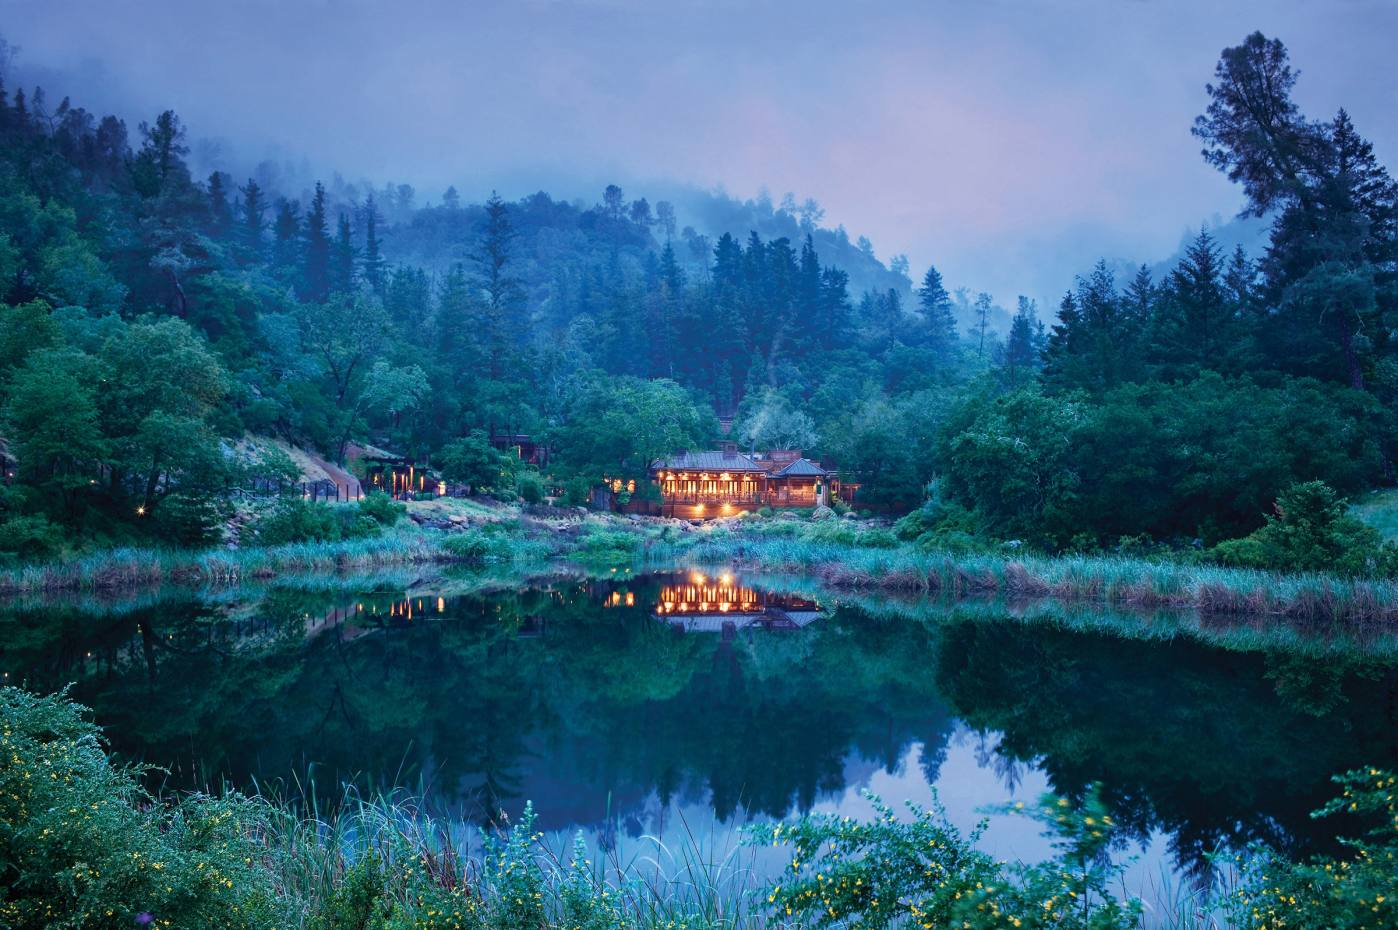 Auberge Resorts' Calistoga Ranch, set in a deepcanyon in northern California's Napa Valley